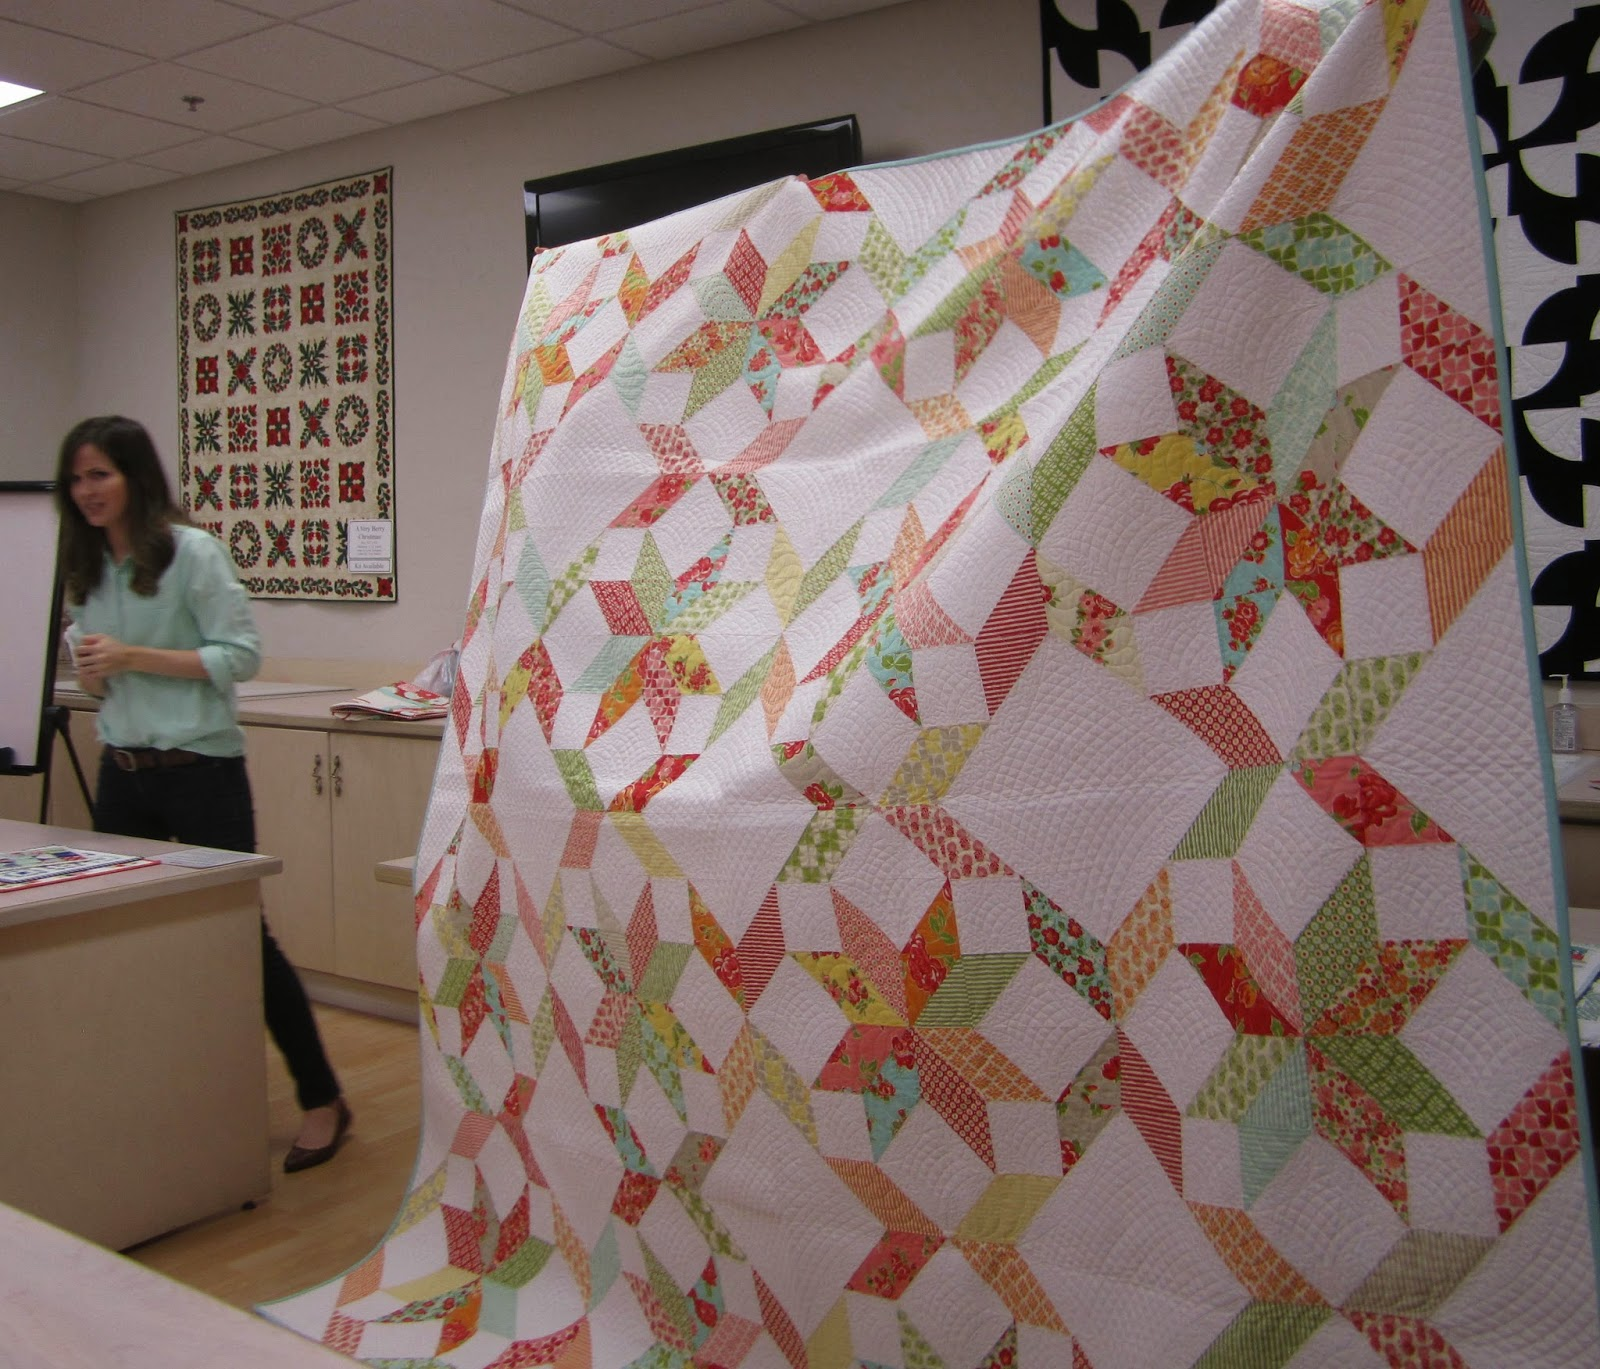 camille roskelley's fresh quilt